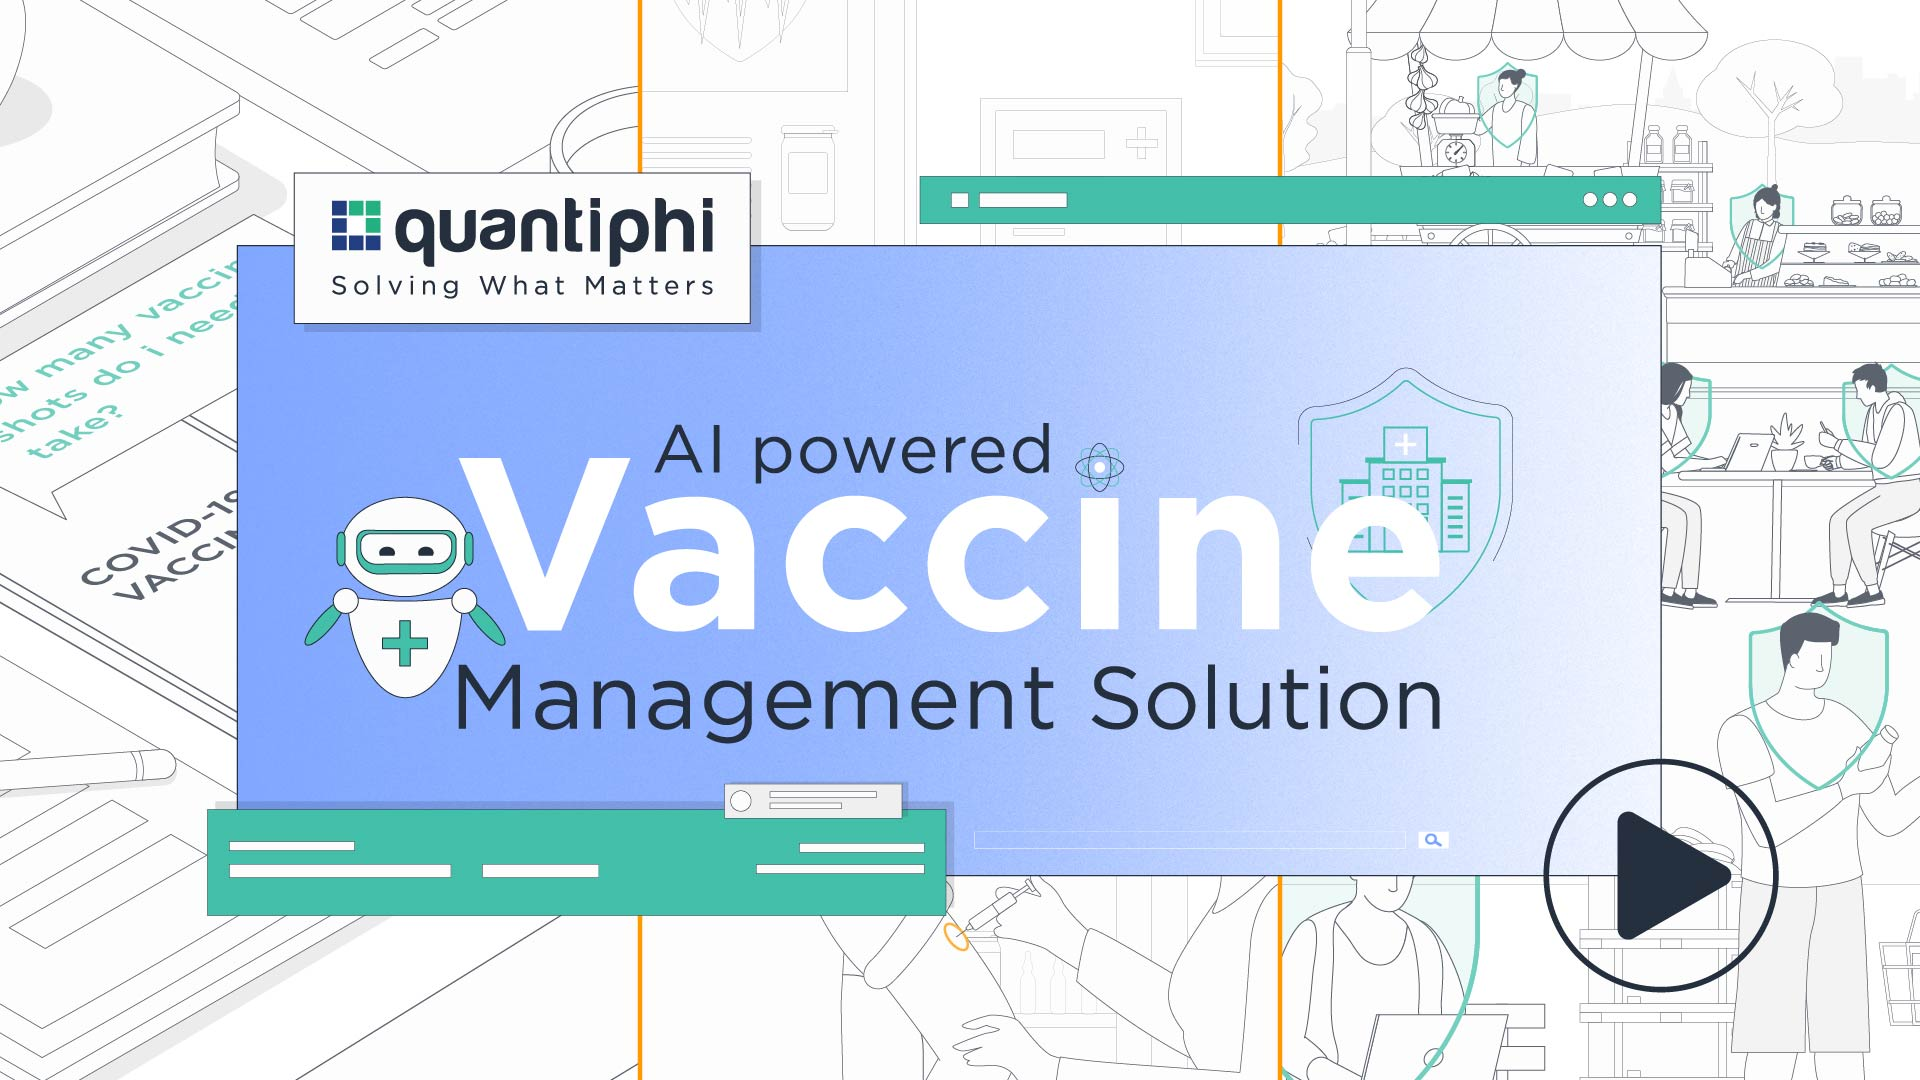 Covid-19 Vaccine Management Solution